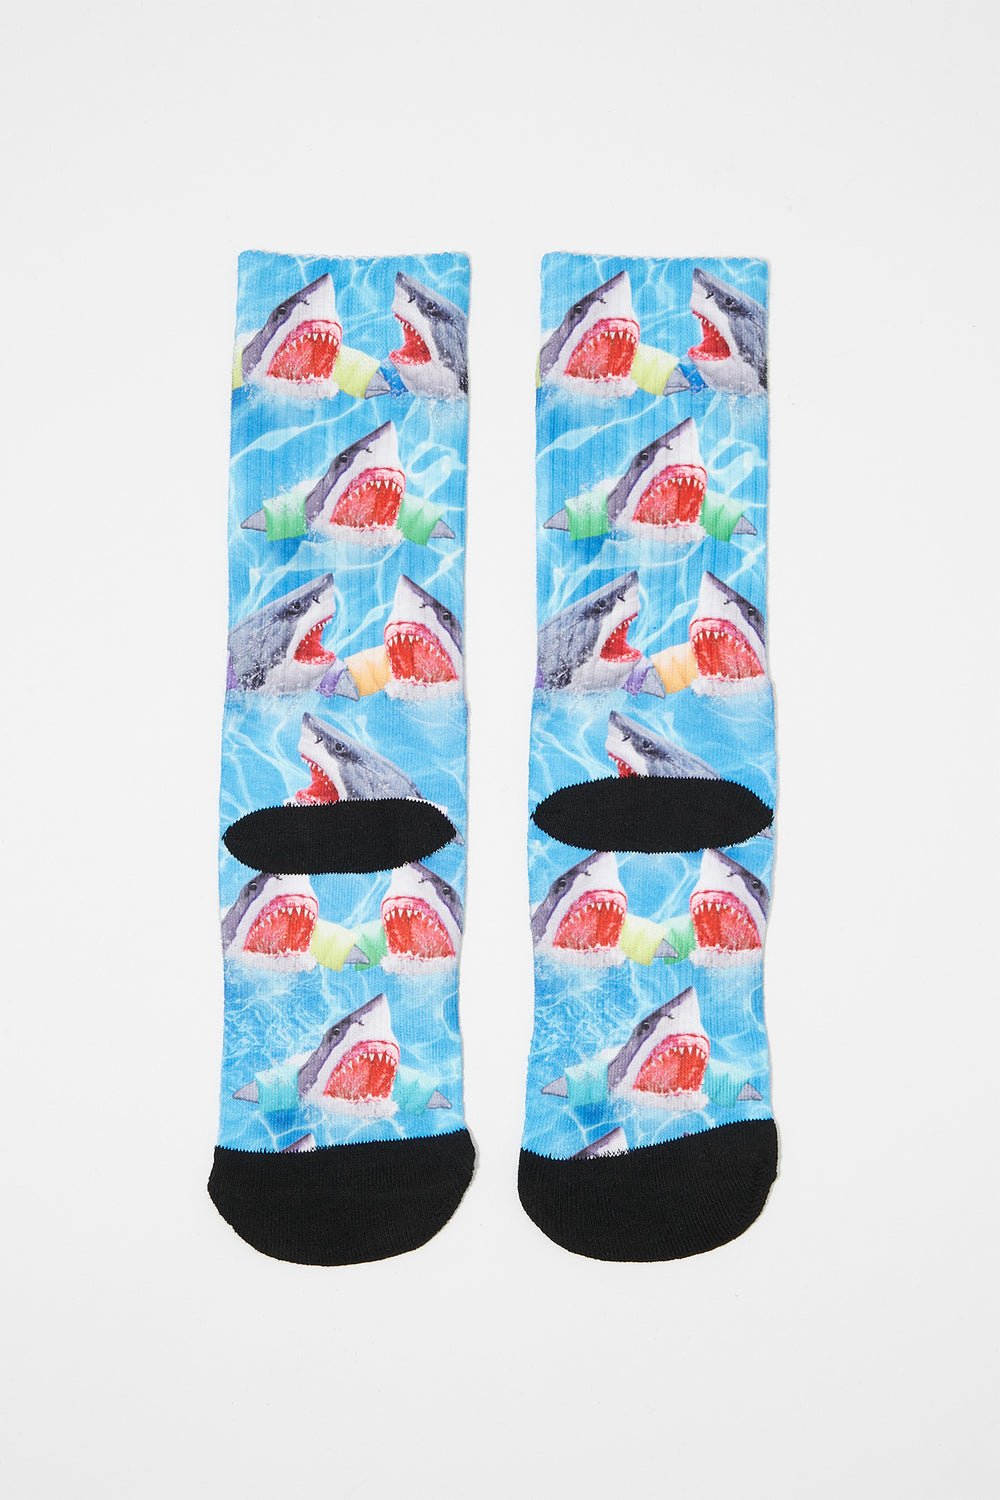 Zoo York Boys Rainbow Crew Socks Ocean Blue